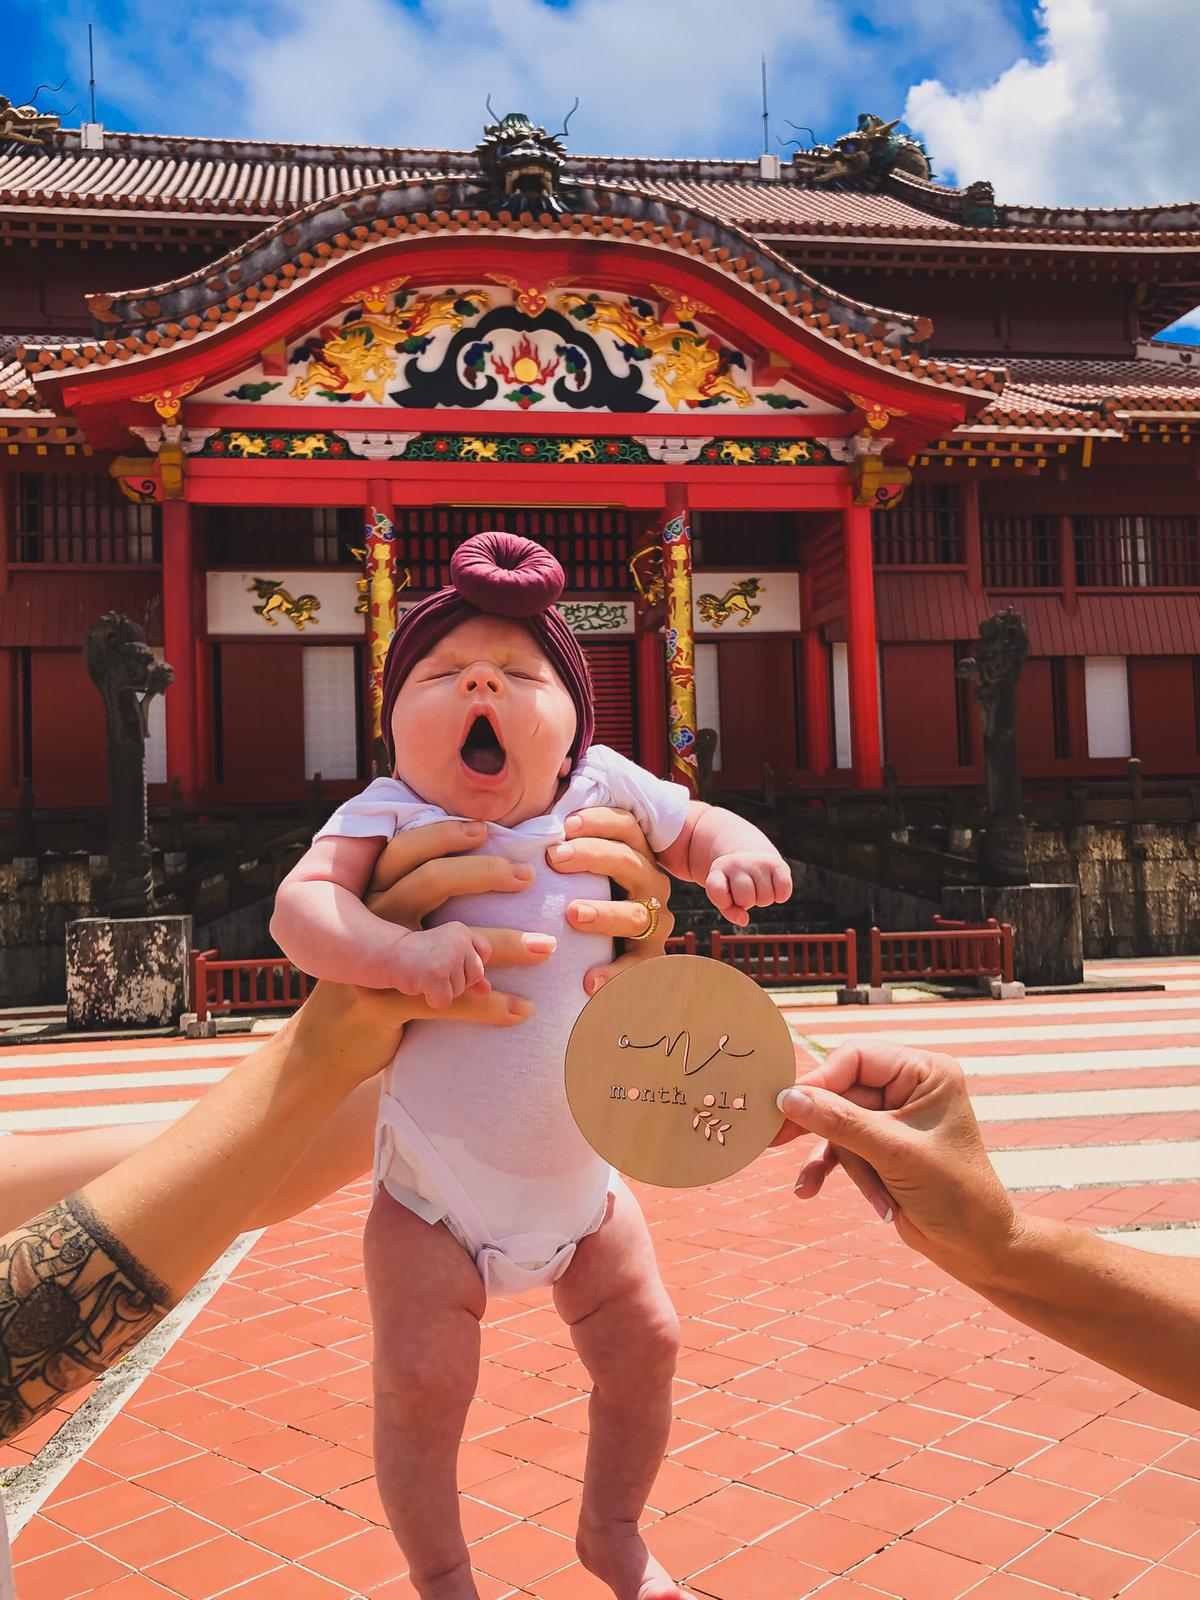 baby infront of shrine